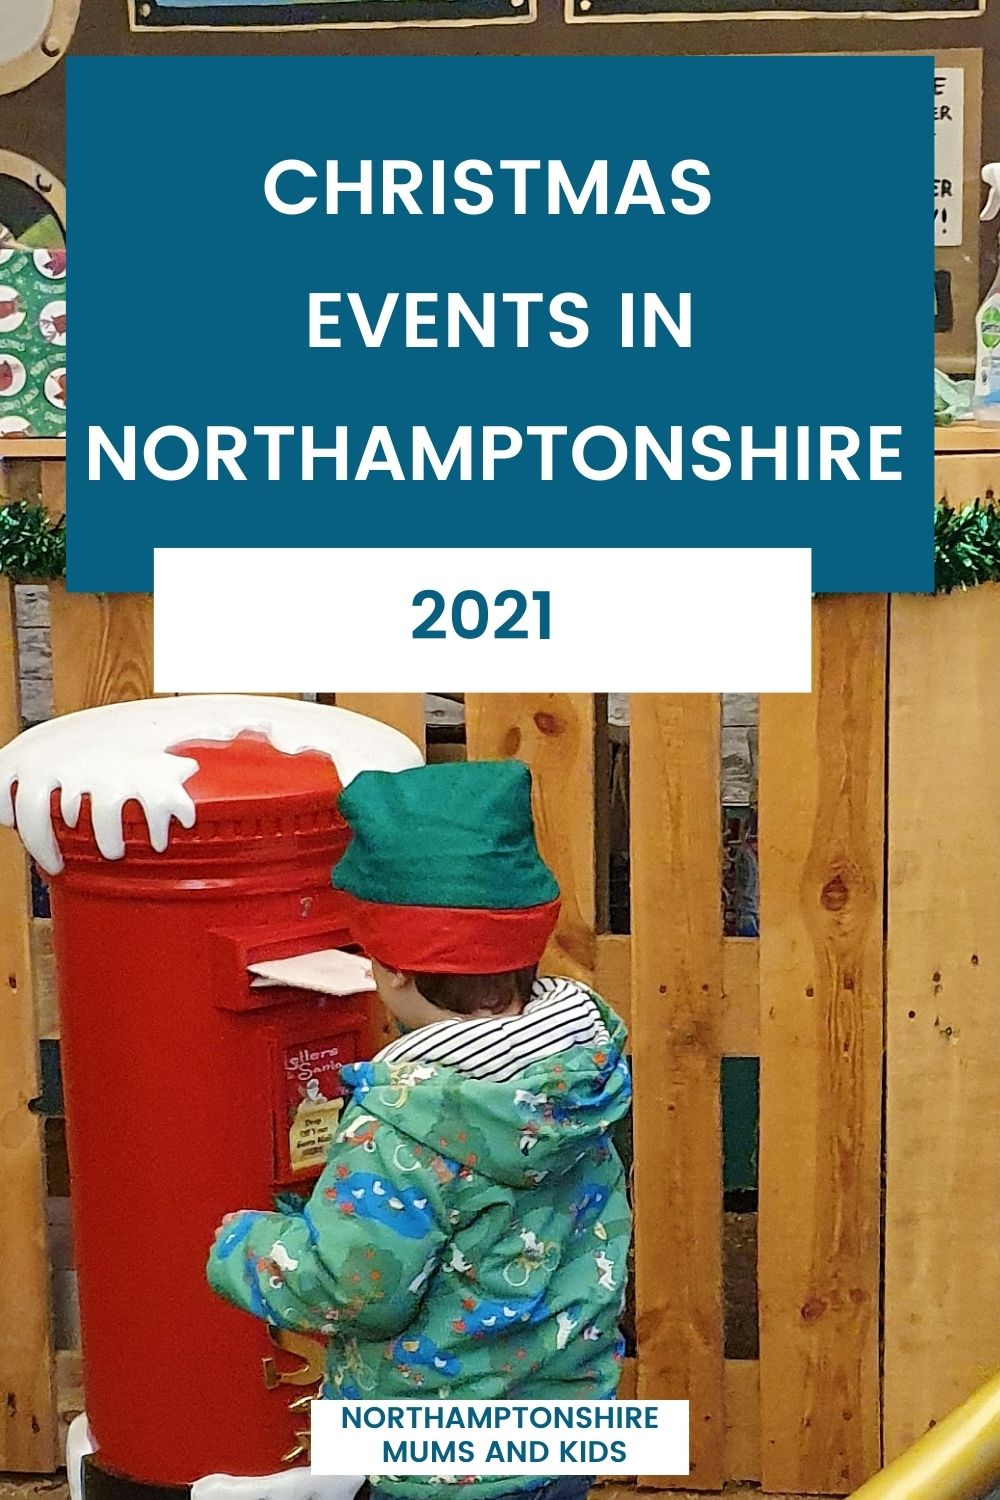 Christmas Events In Northamptonshire For Kids 2021